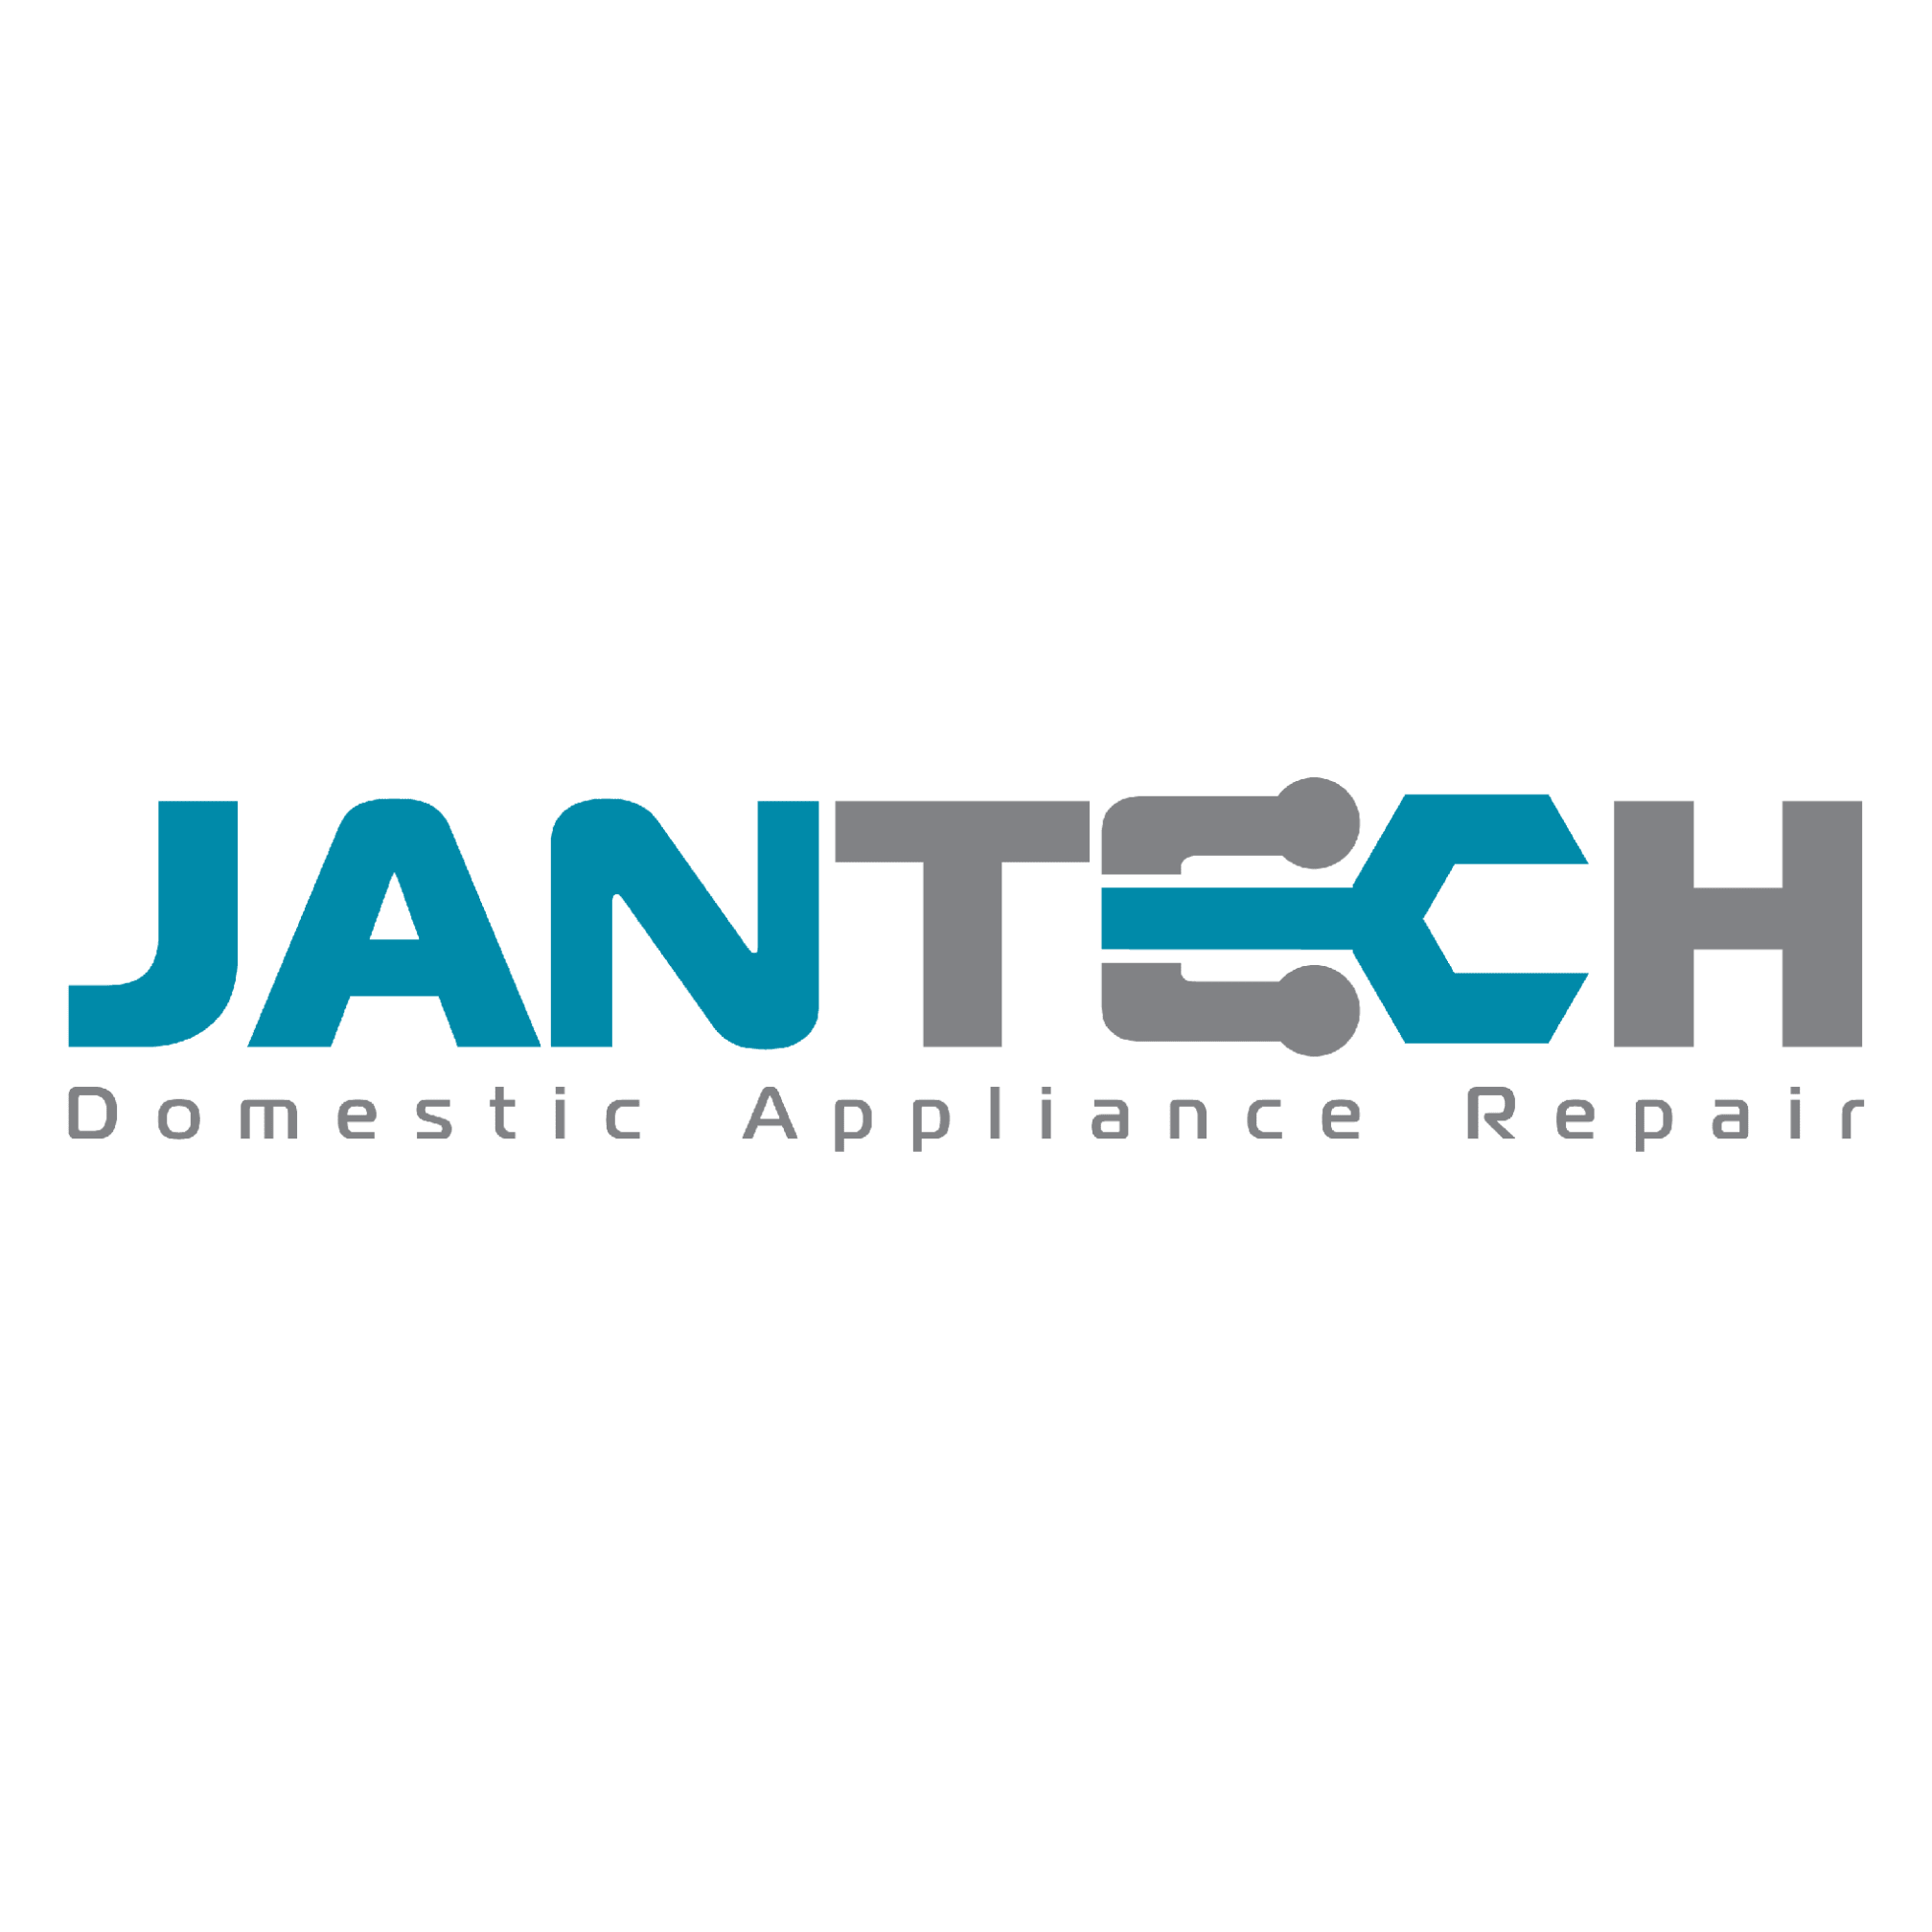 Jantech Domestic Appliance Repair